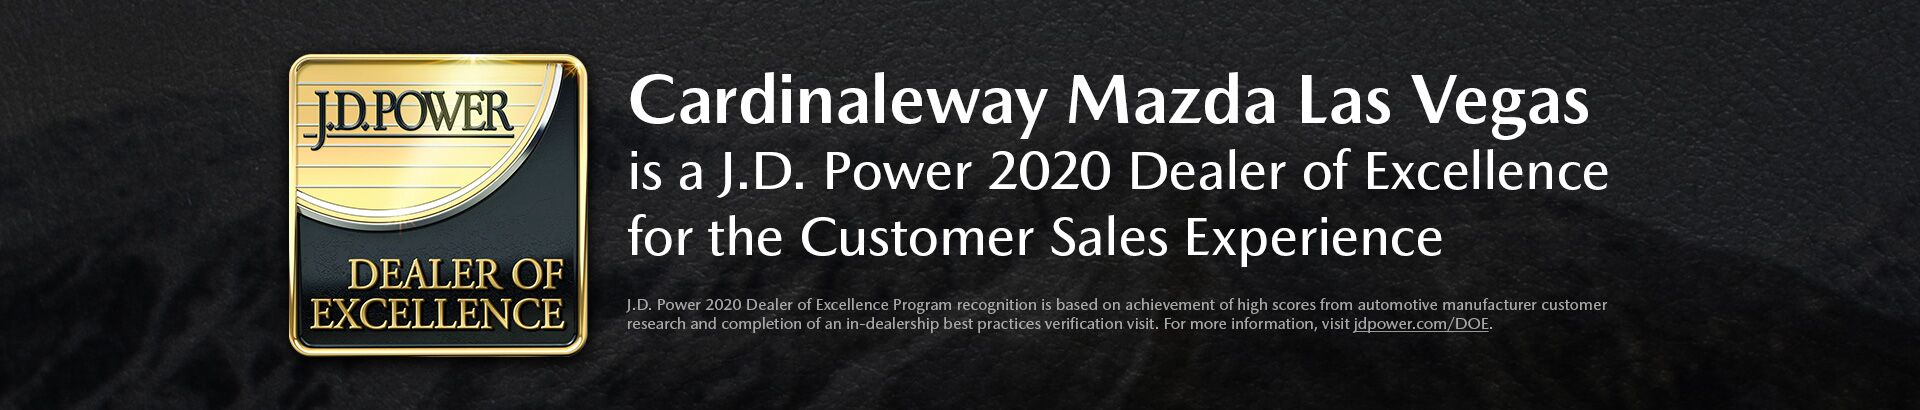 J.D. Power 2020 Dealer of Excellence